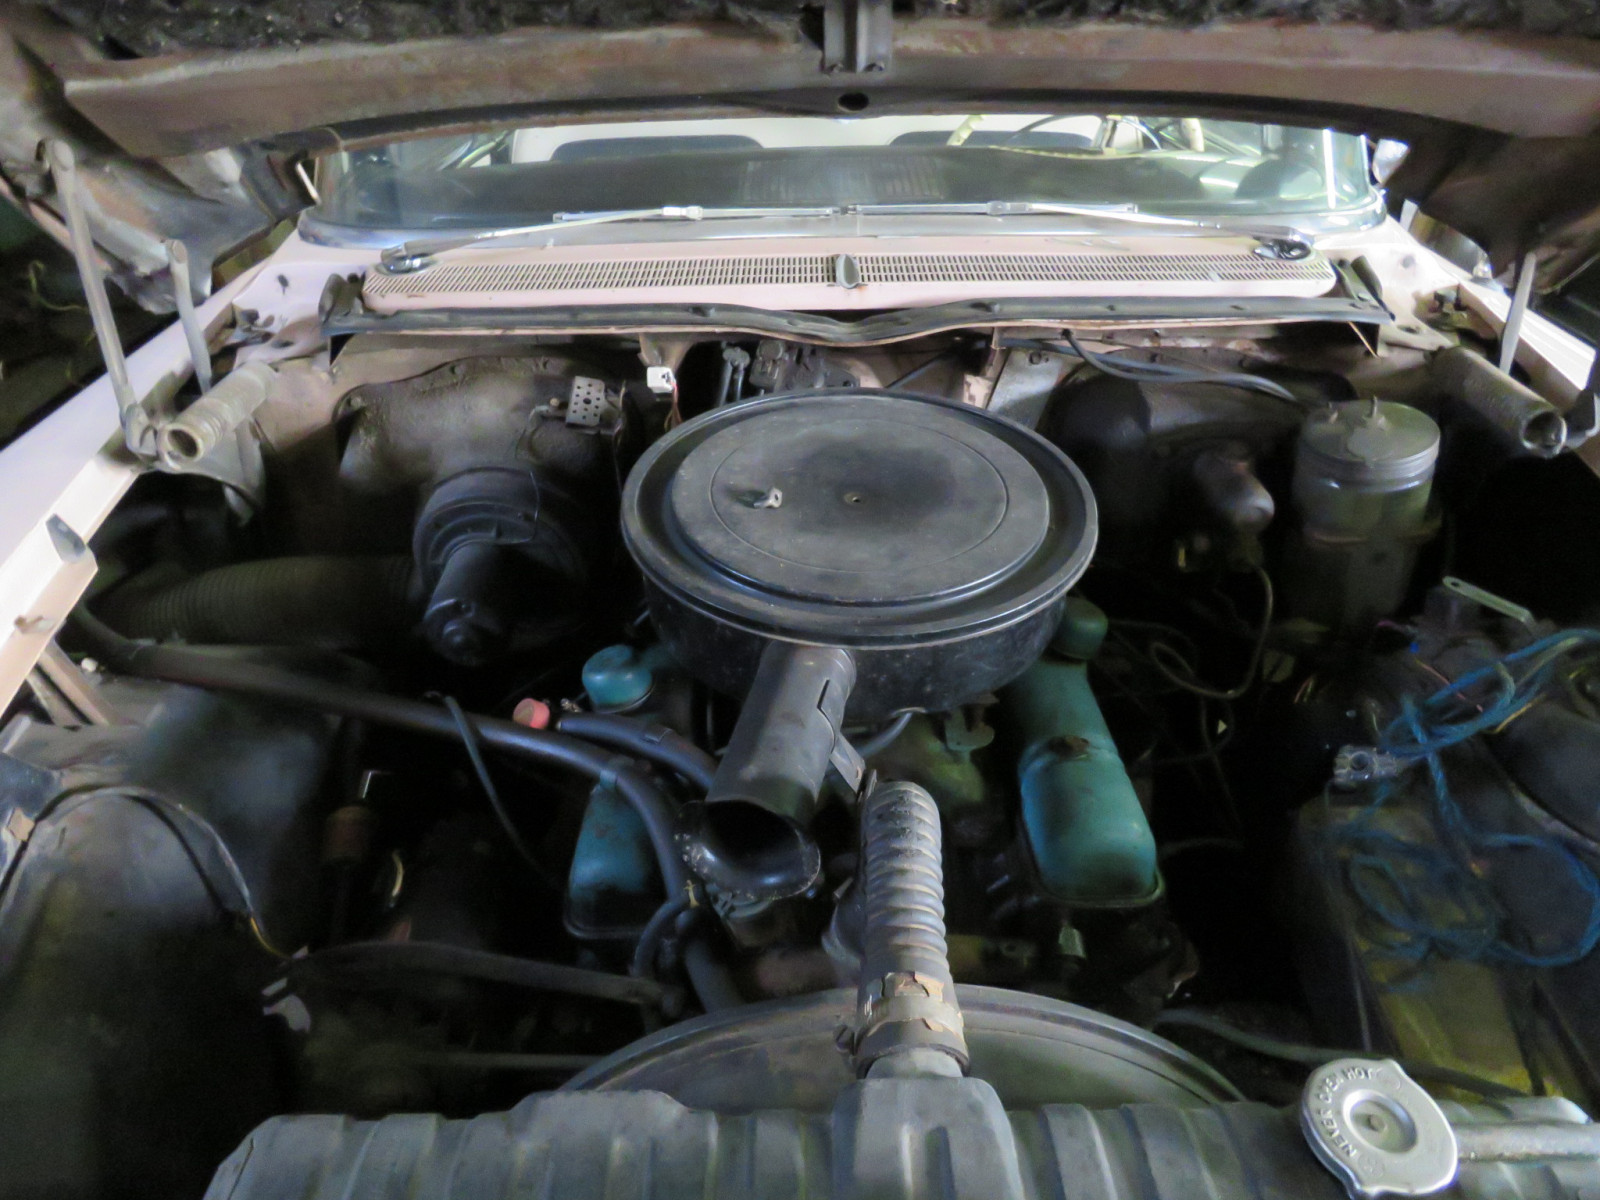 1958 Buick Special 4dr HT - Image 7